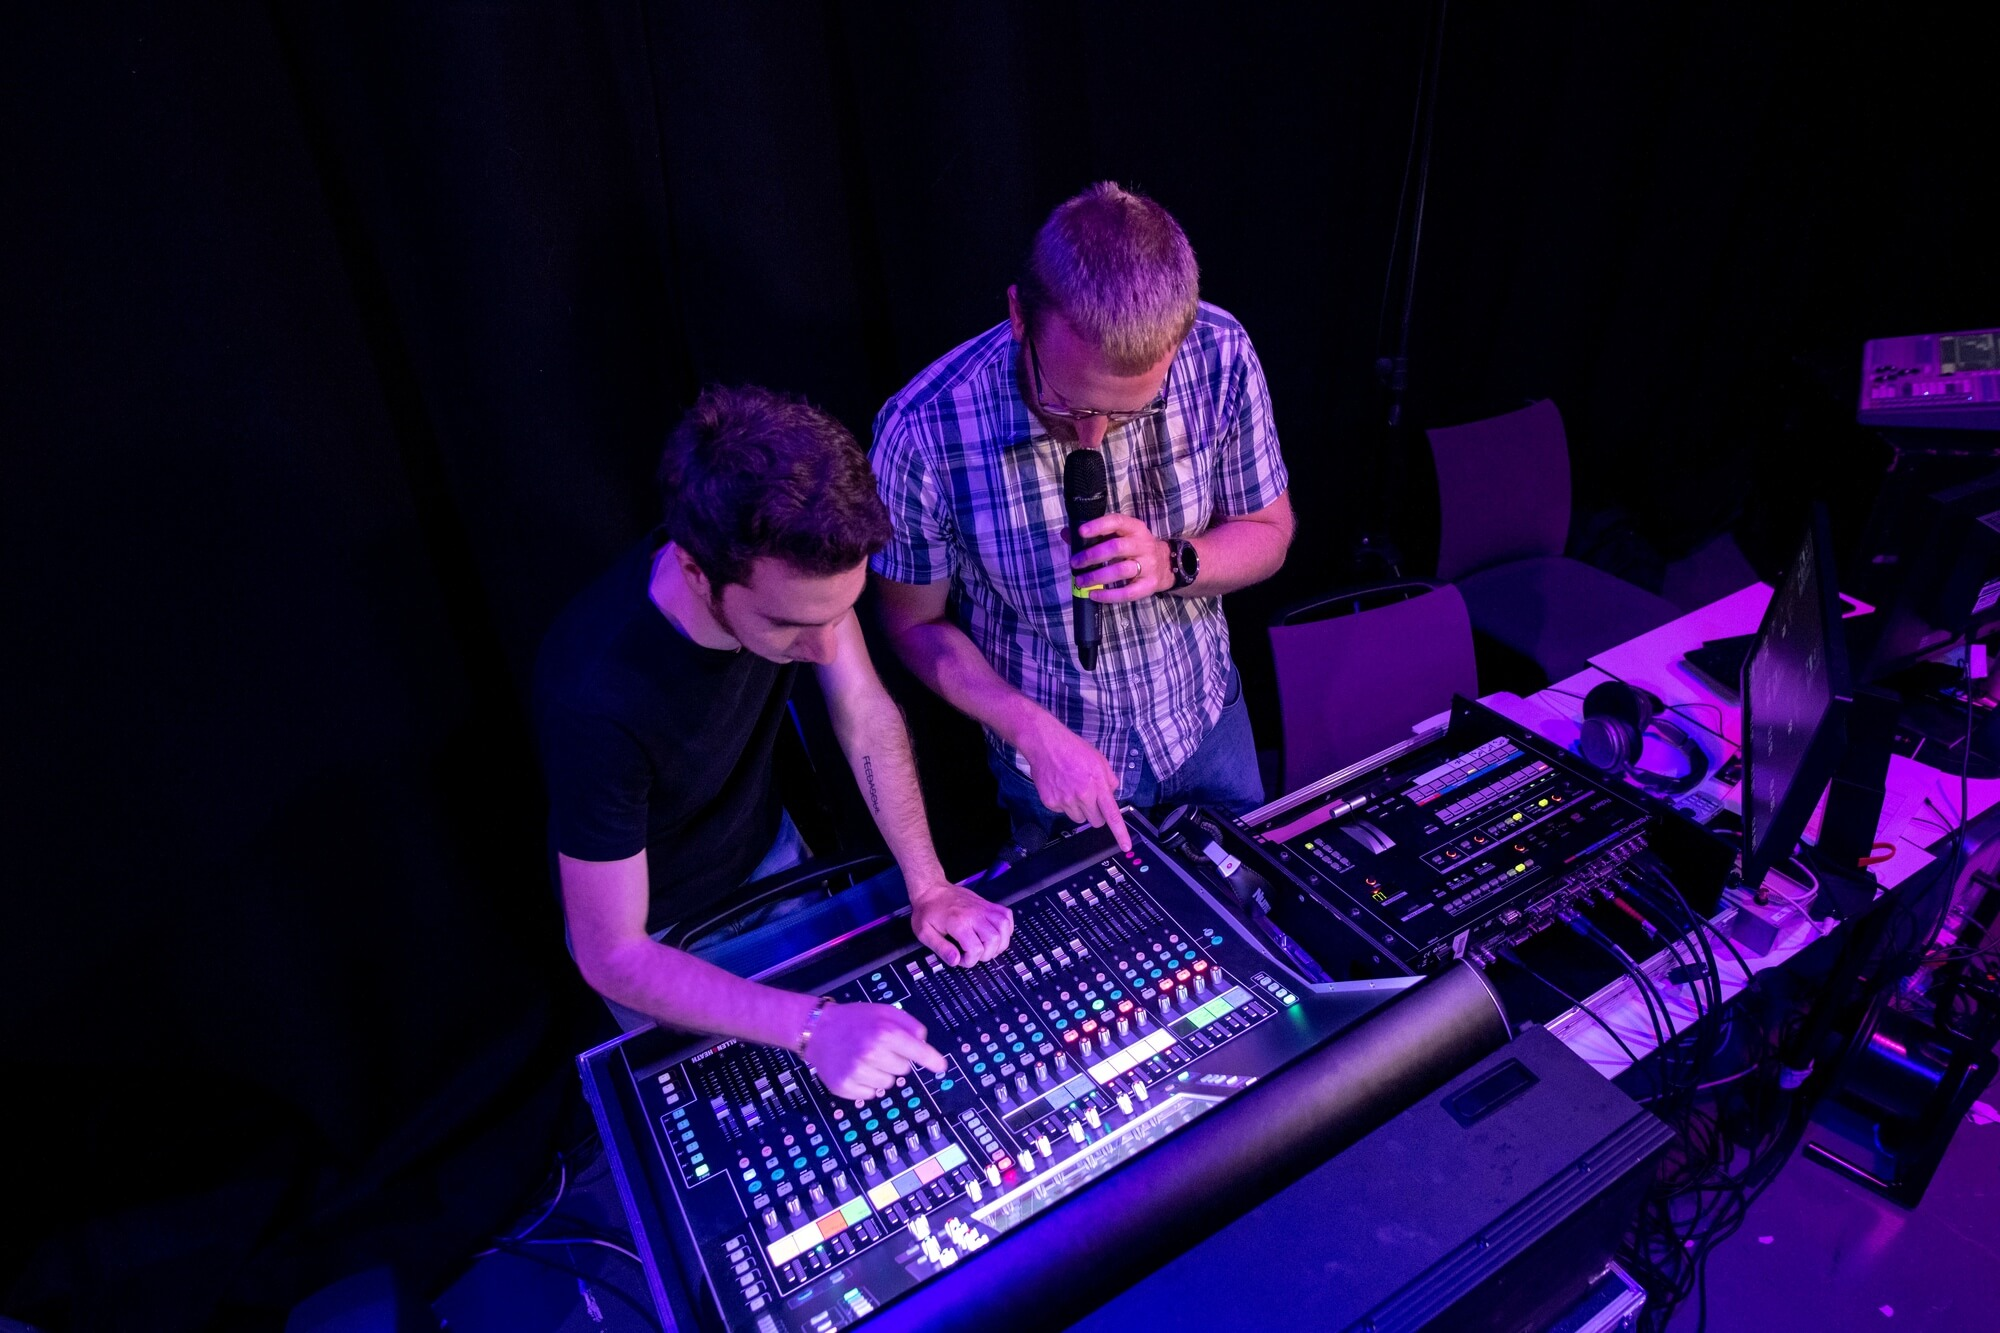 An academic and a student working on a sound desk.